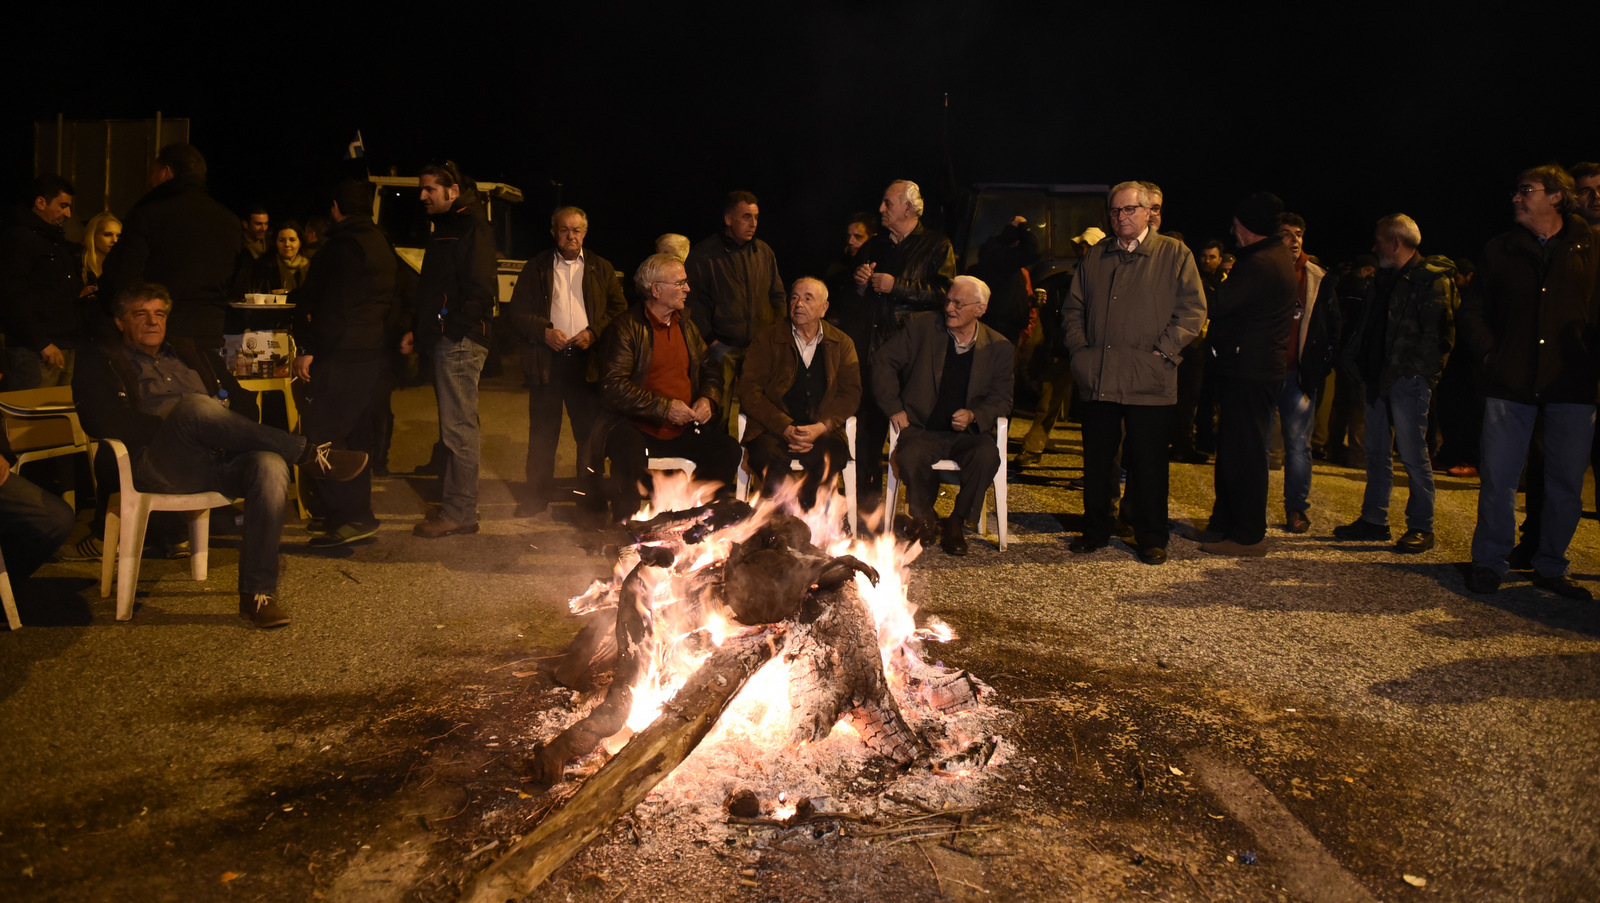 In this Feb. 2, 2016 photo farmers stand behind a makeshift fire in front of tractors, near Kerdilia, Greece. Combine a rapidly aging population, a depleted work force and leaky finances and any country's pension system would be in trouble. For debt-hobbled, unemployment-plagued Greece, it's a nightmare.(AP/Giannis Papanikos)